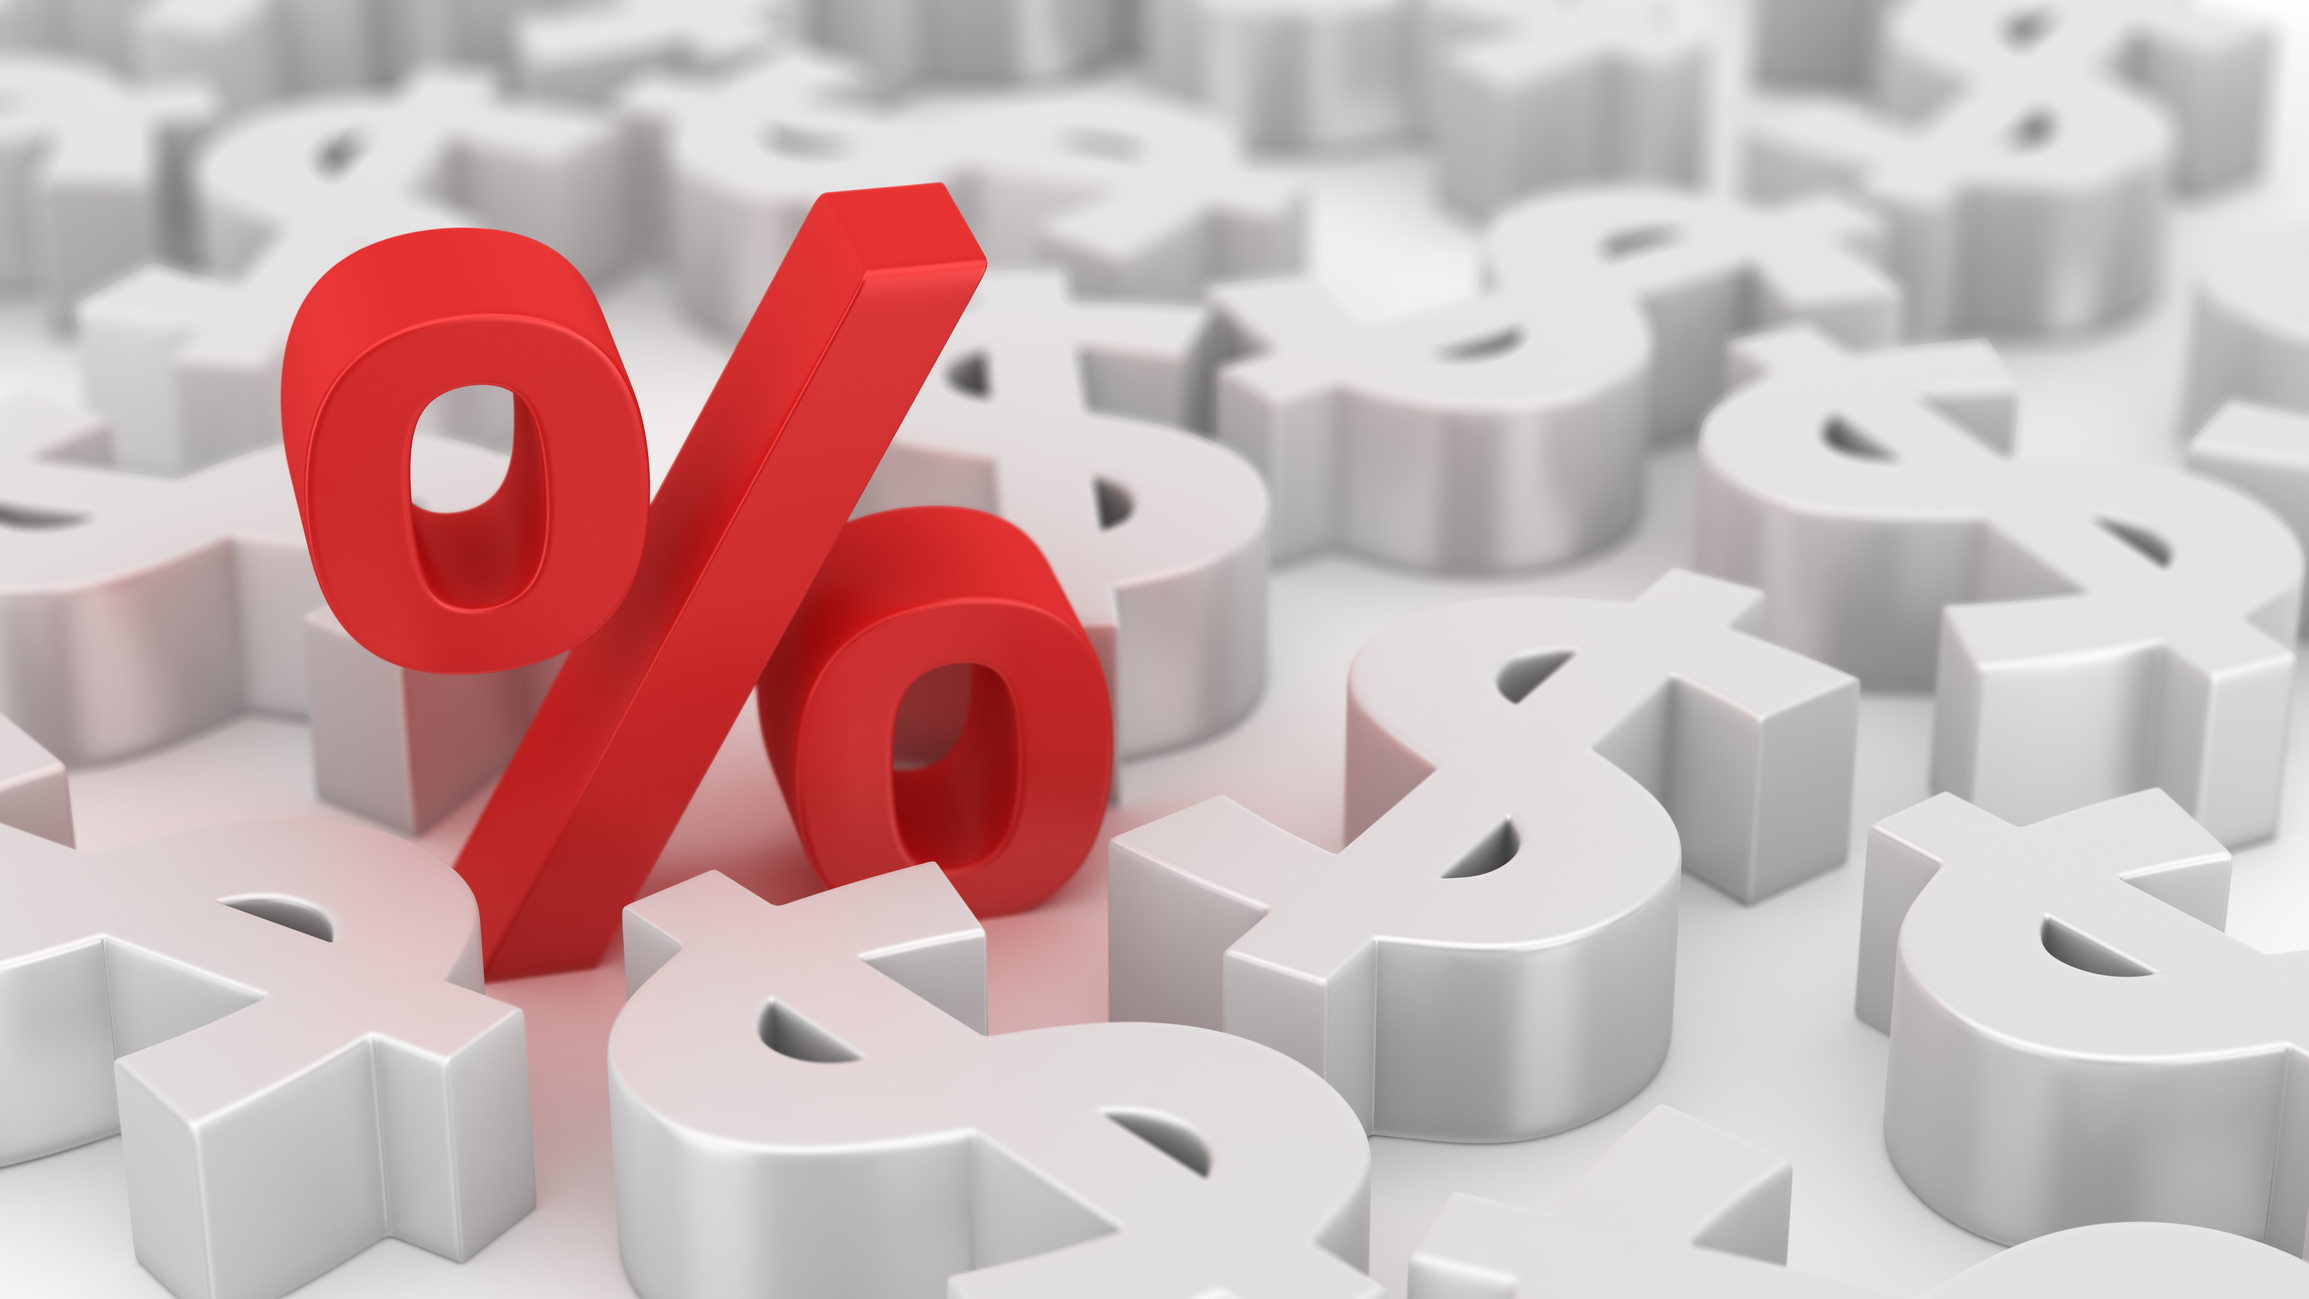 Red percent sign amid white dollar signs